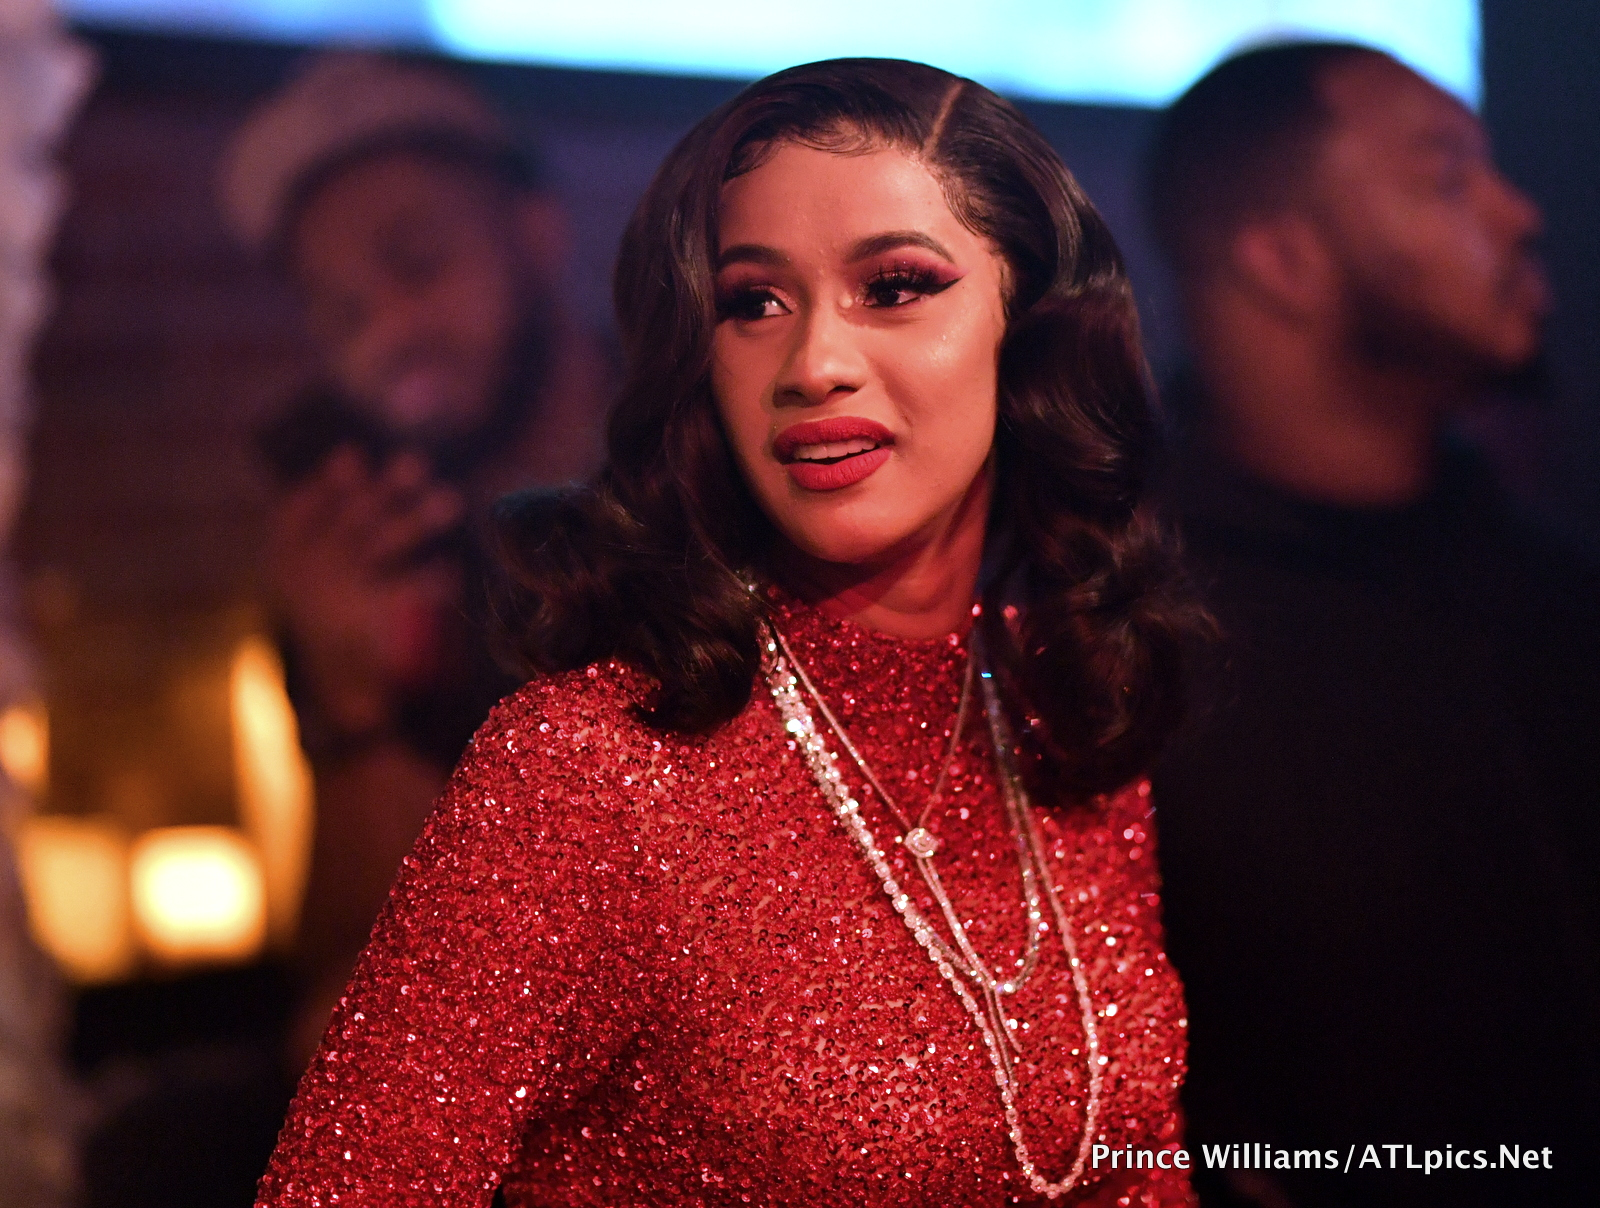 Cardi B To Star In A Stripper Revenge Film With Jennifer Lopez, Constance Wu, Keke Palmer And More